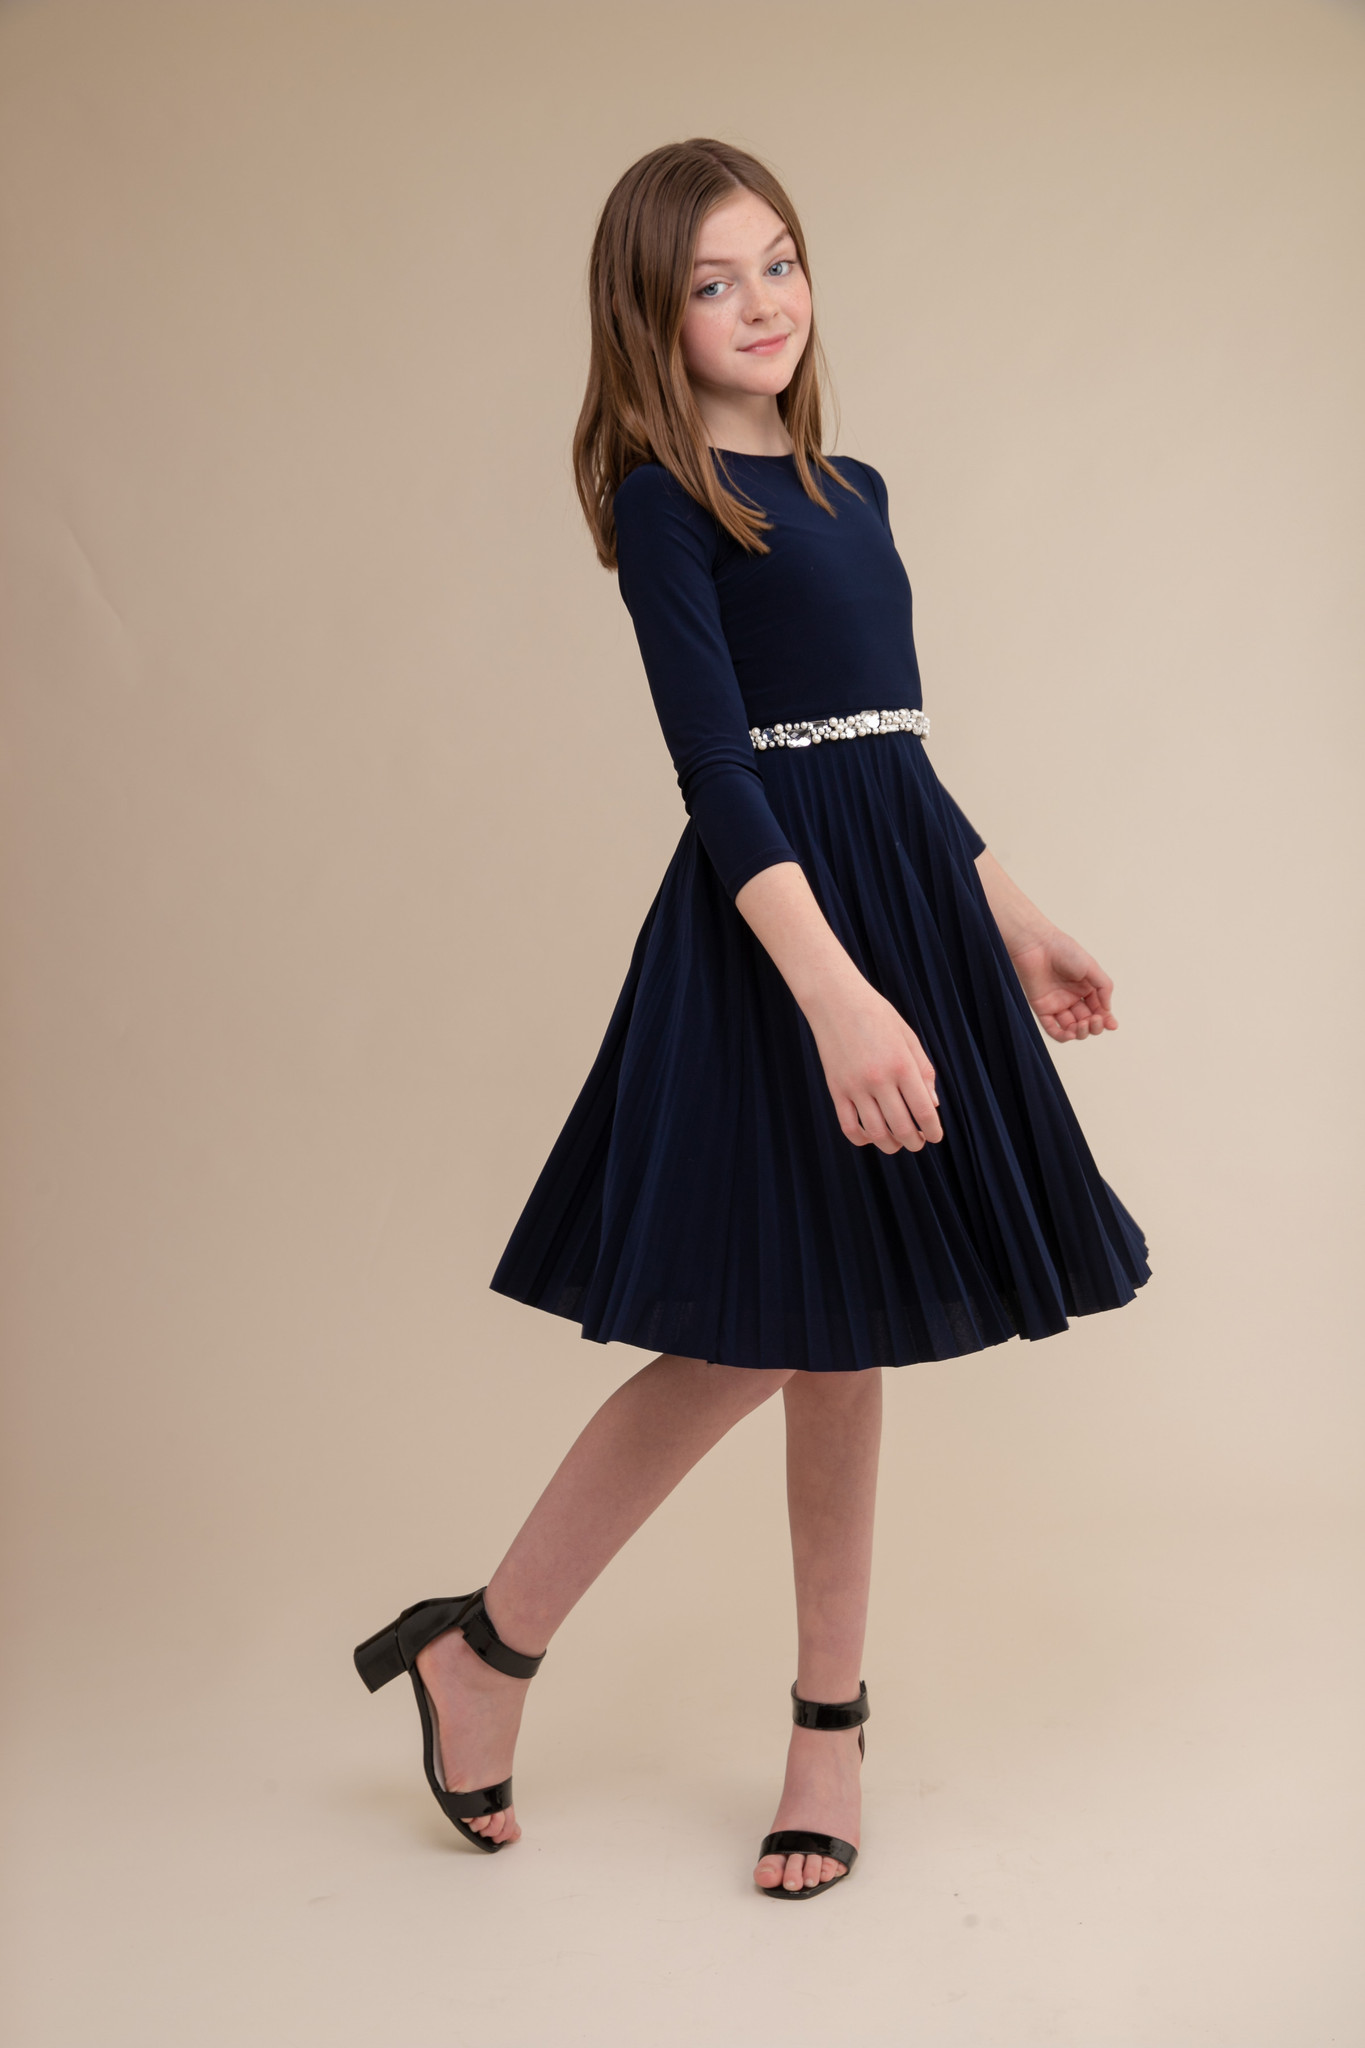 Navy Blue High Neck Pleated Dress with Sleeve in Longer Length with belt.